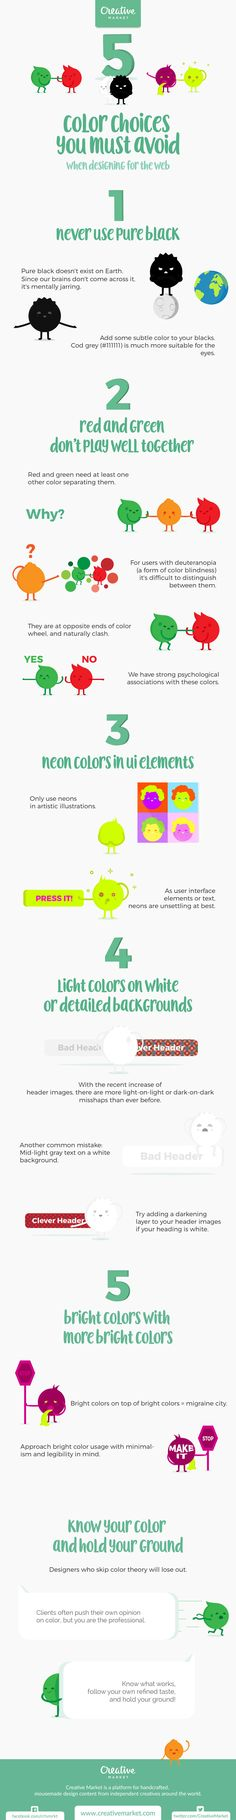 [INFOGRAPHIC] Color Choices to Avoid—Details>